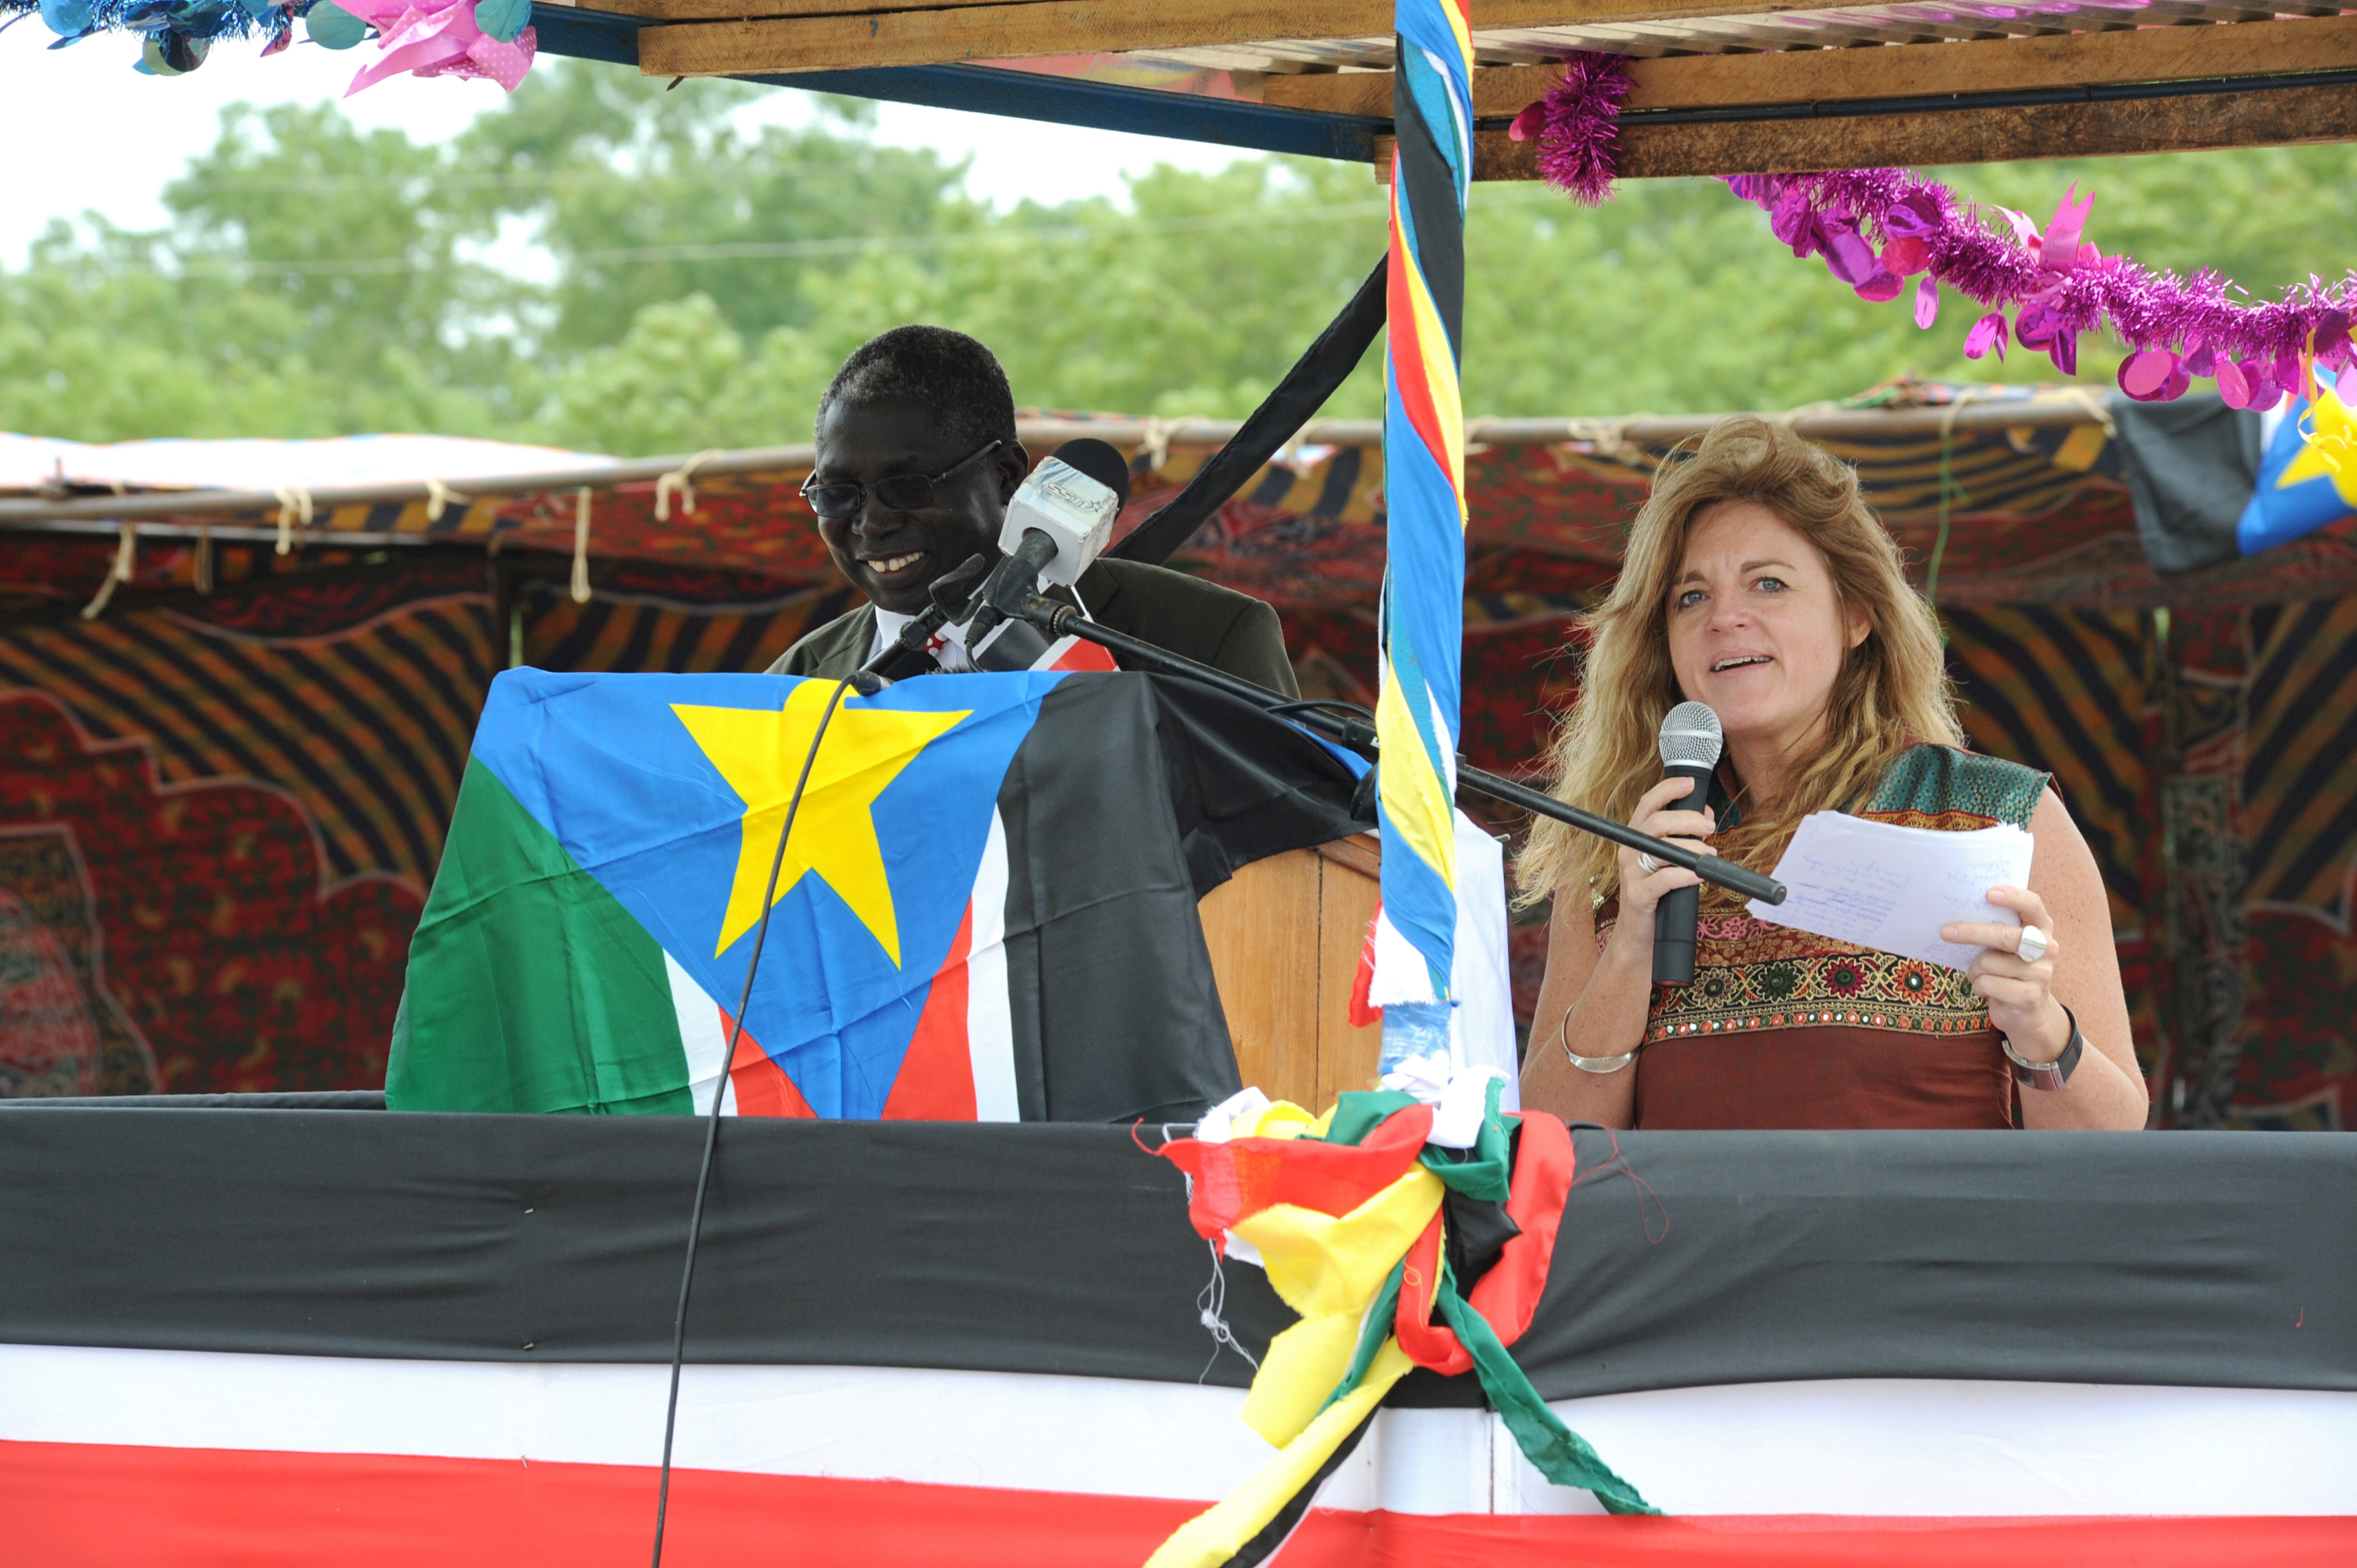 Hilde Johnson (right), Special Representative of the Secretary-General for South Sudan, speaks at a signing ceremony of the Jonglei State Communities' conference for peace, reconciliation and tolerance. With the signing, six community representatives of greater Jonglei agreed to end all inter-tribal conflicts.